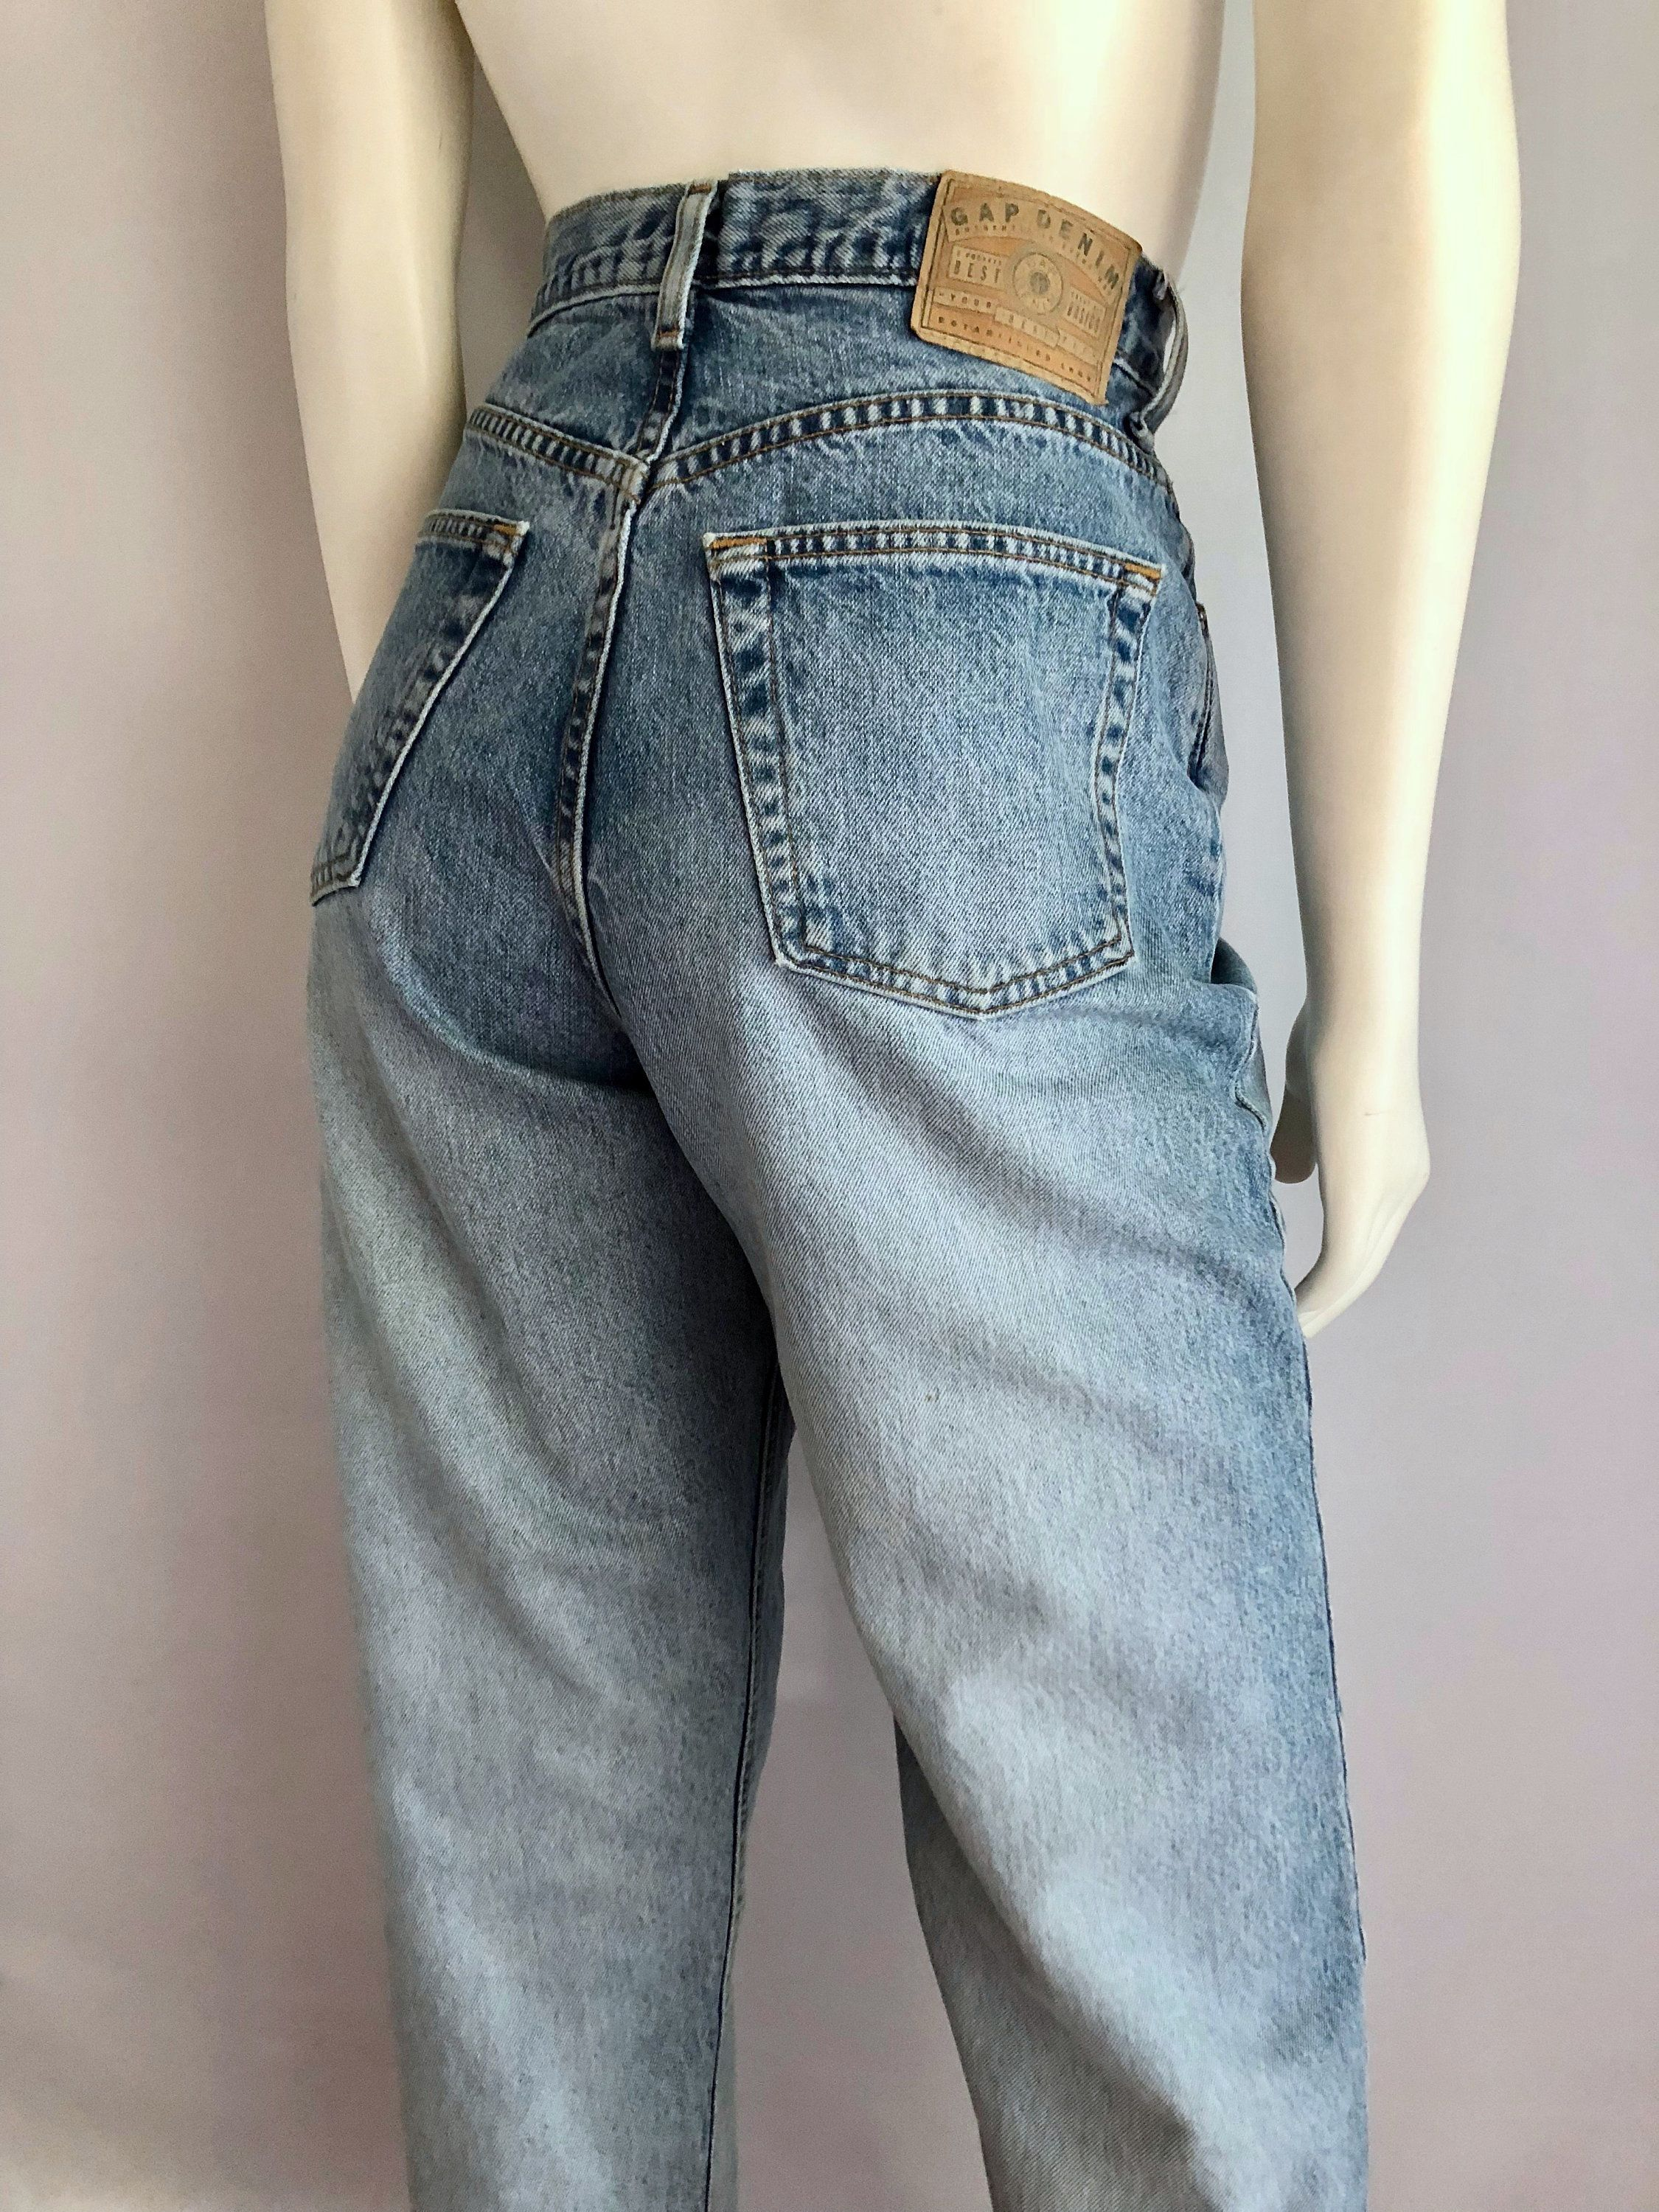 dc22f4c0 Vintage Women's 80's Gap Jeans, High Waisted, Reverse Cut, Denim (L) by  Freshandswanky on Etsy